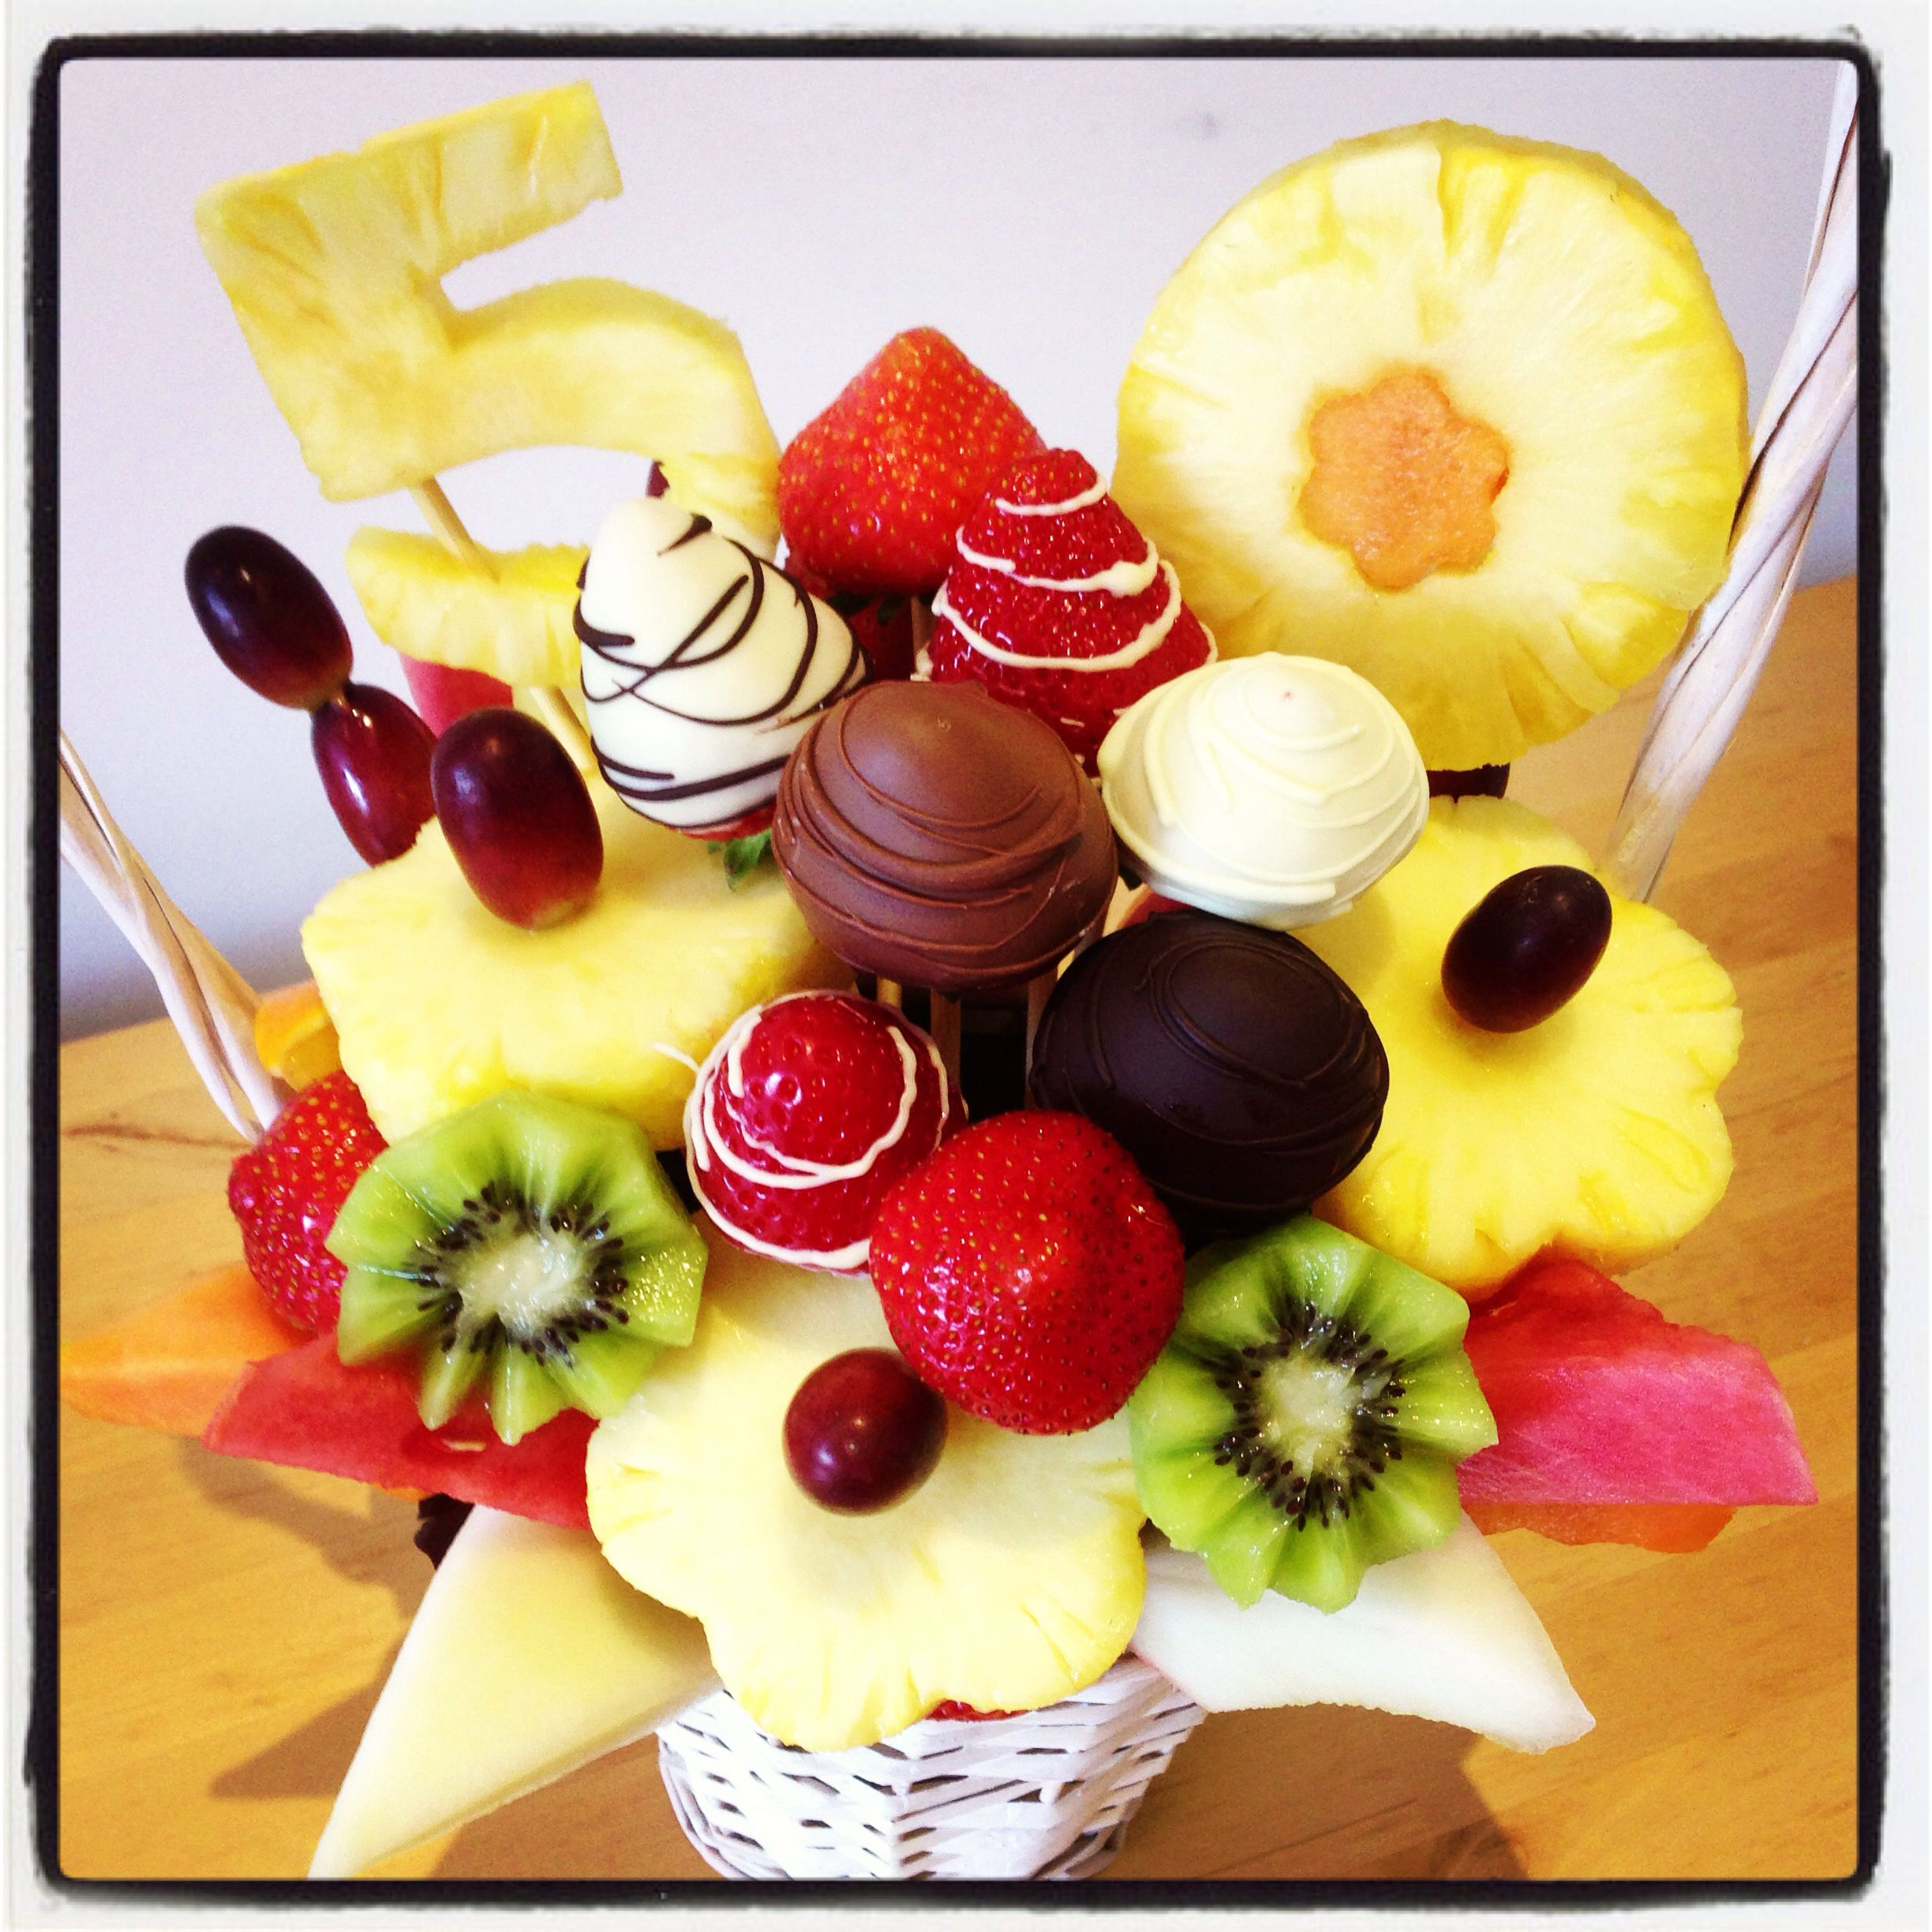 Fruit And Flowers Wedding Anniversary Gifts: I Made This Chocolate Sunny Days Edible Fruit Bouquet For